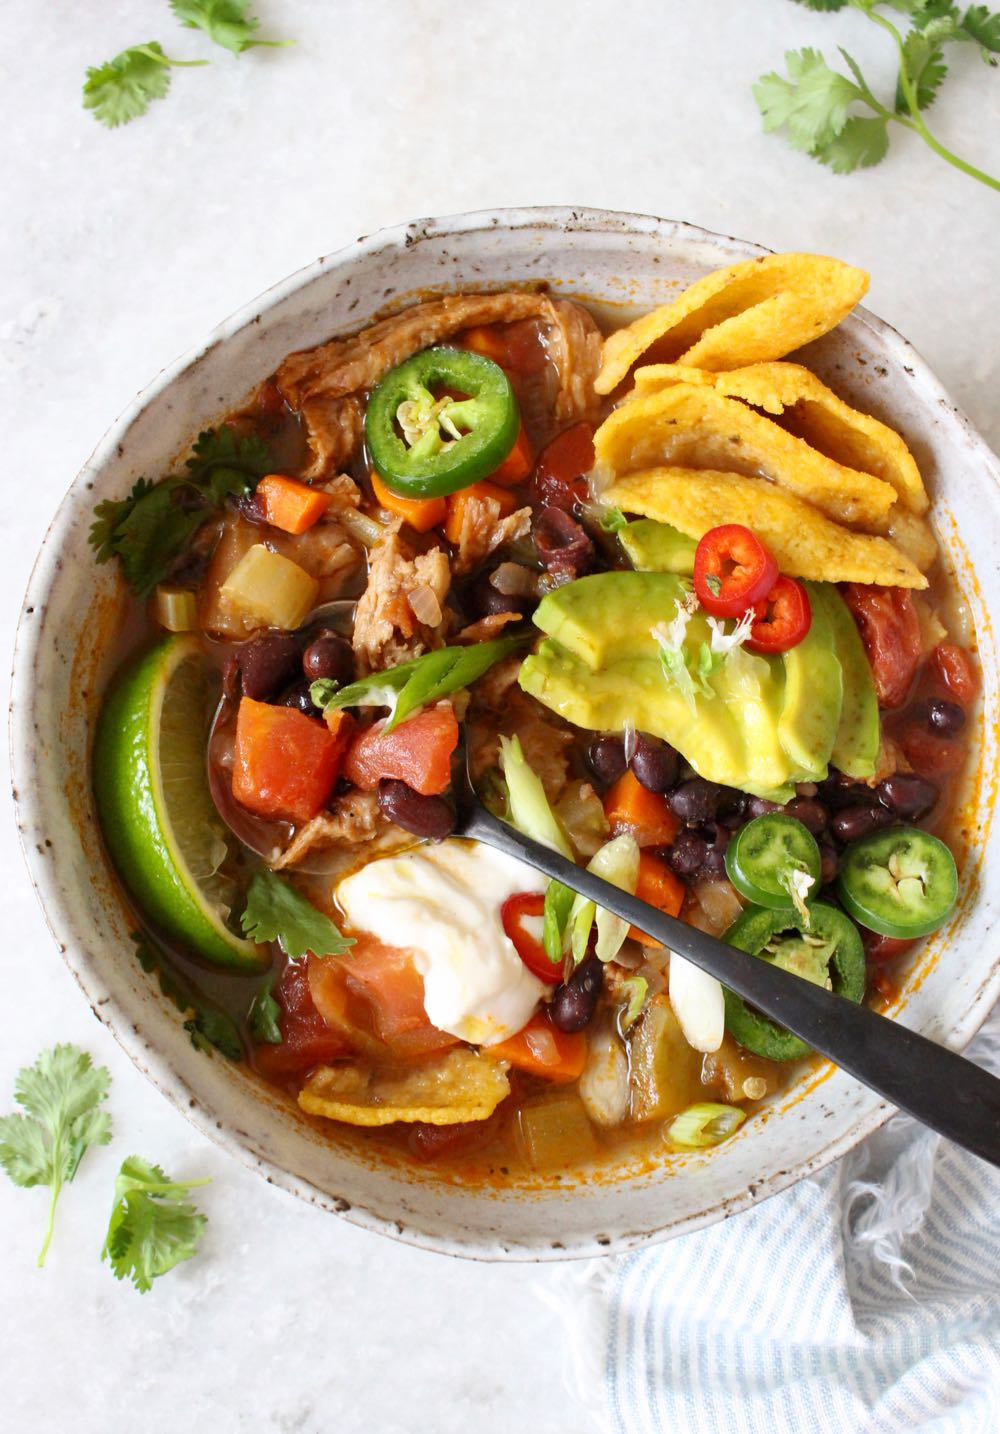 How to Make Vegan Chicken Tortilla Soup